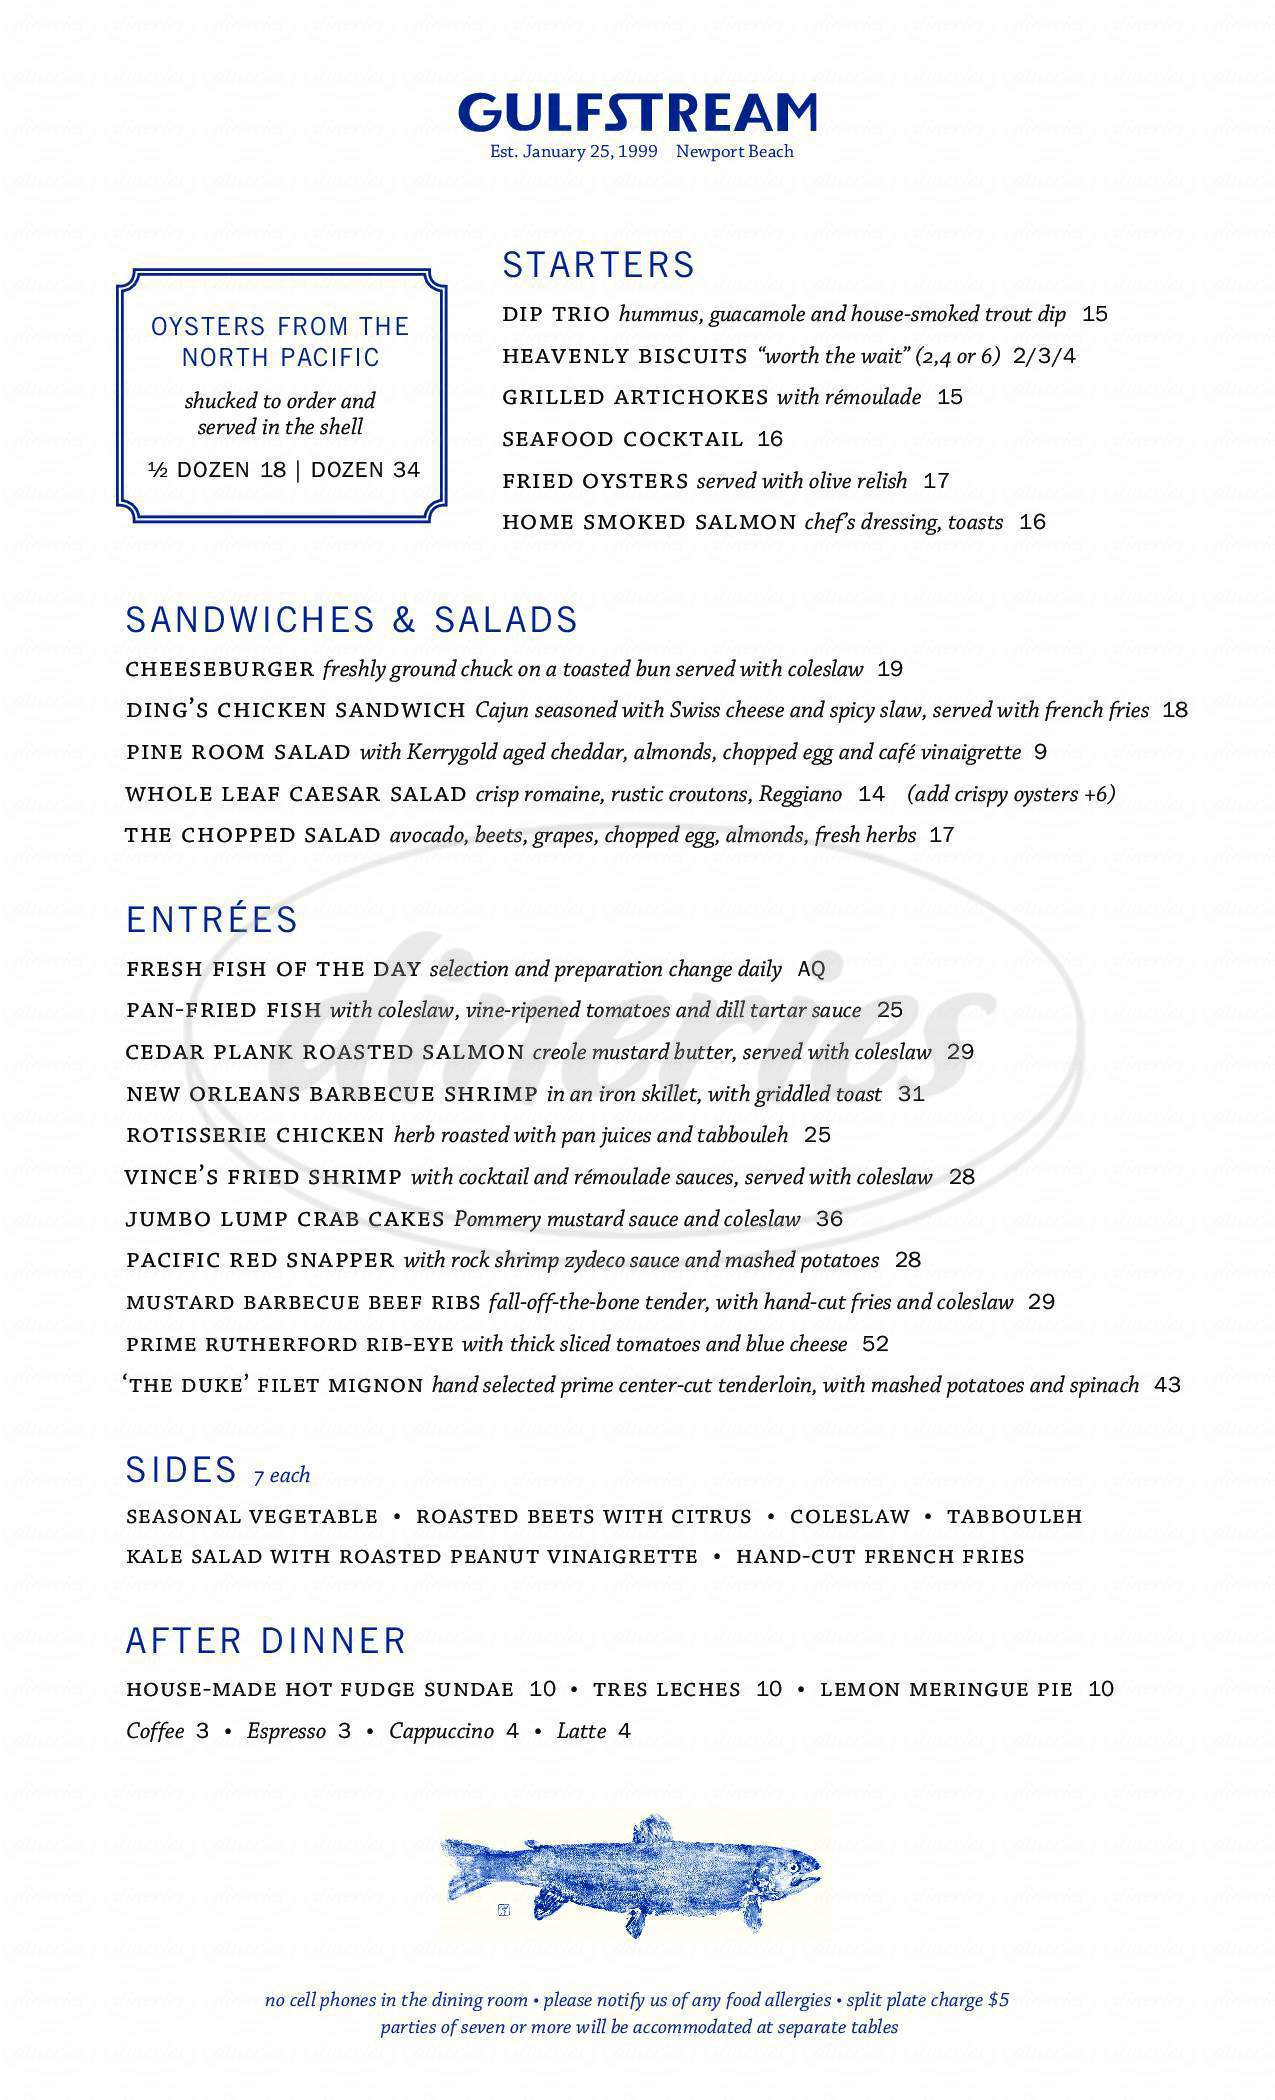 Gulfstream Big Menu Newport Beach Dineries